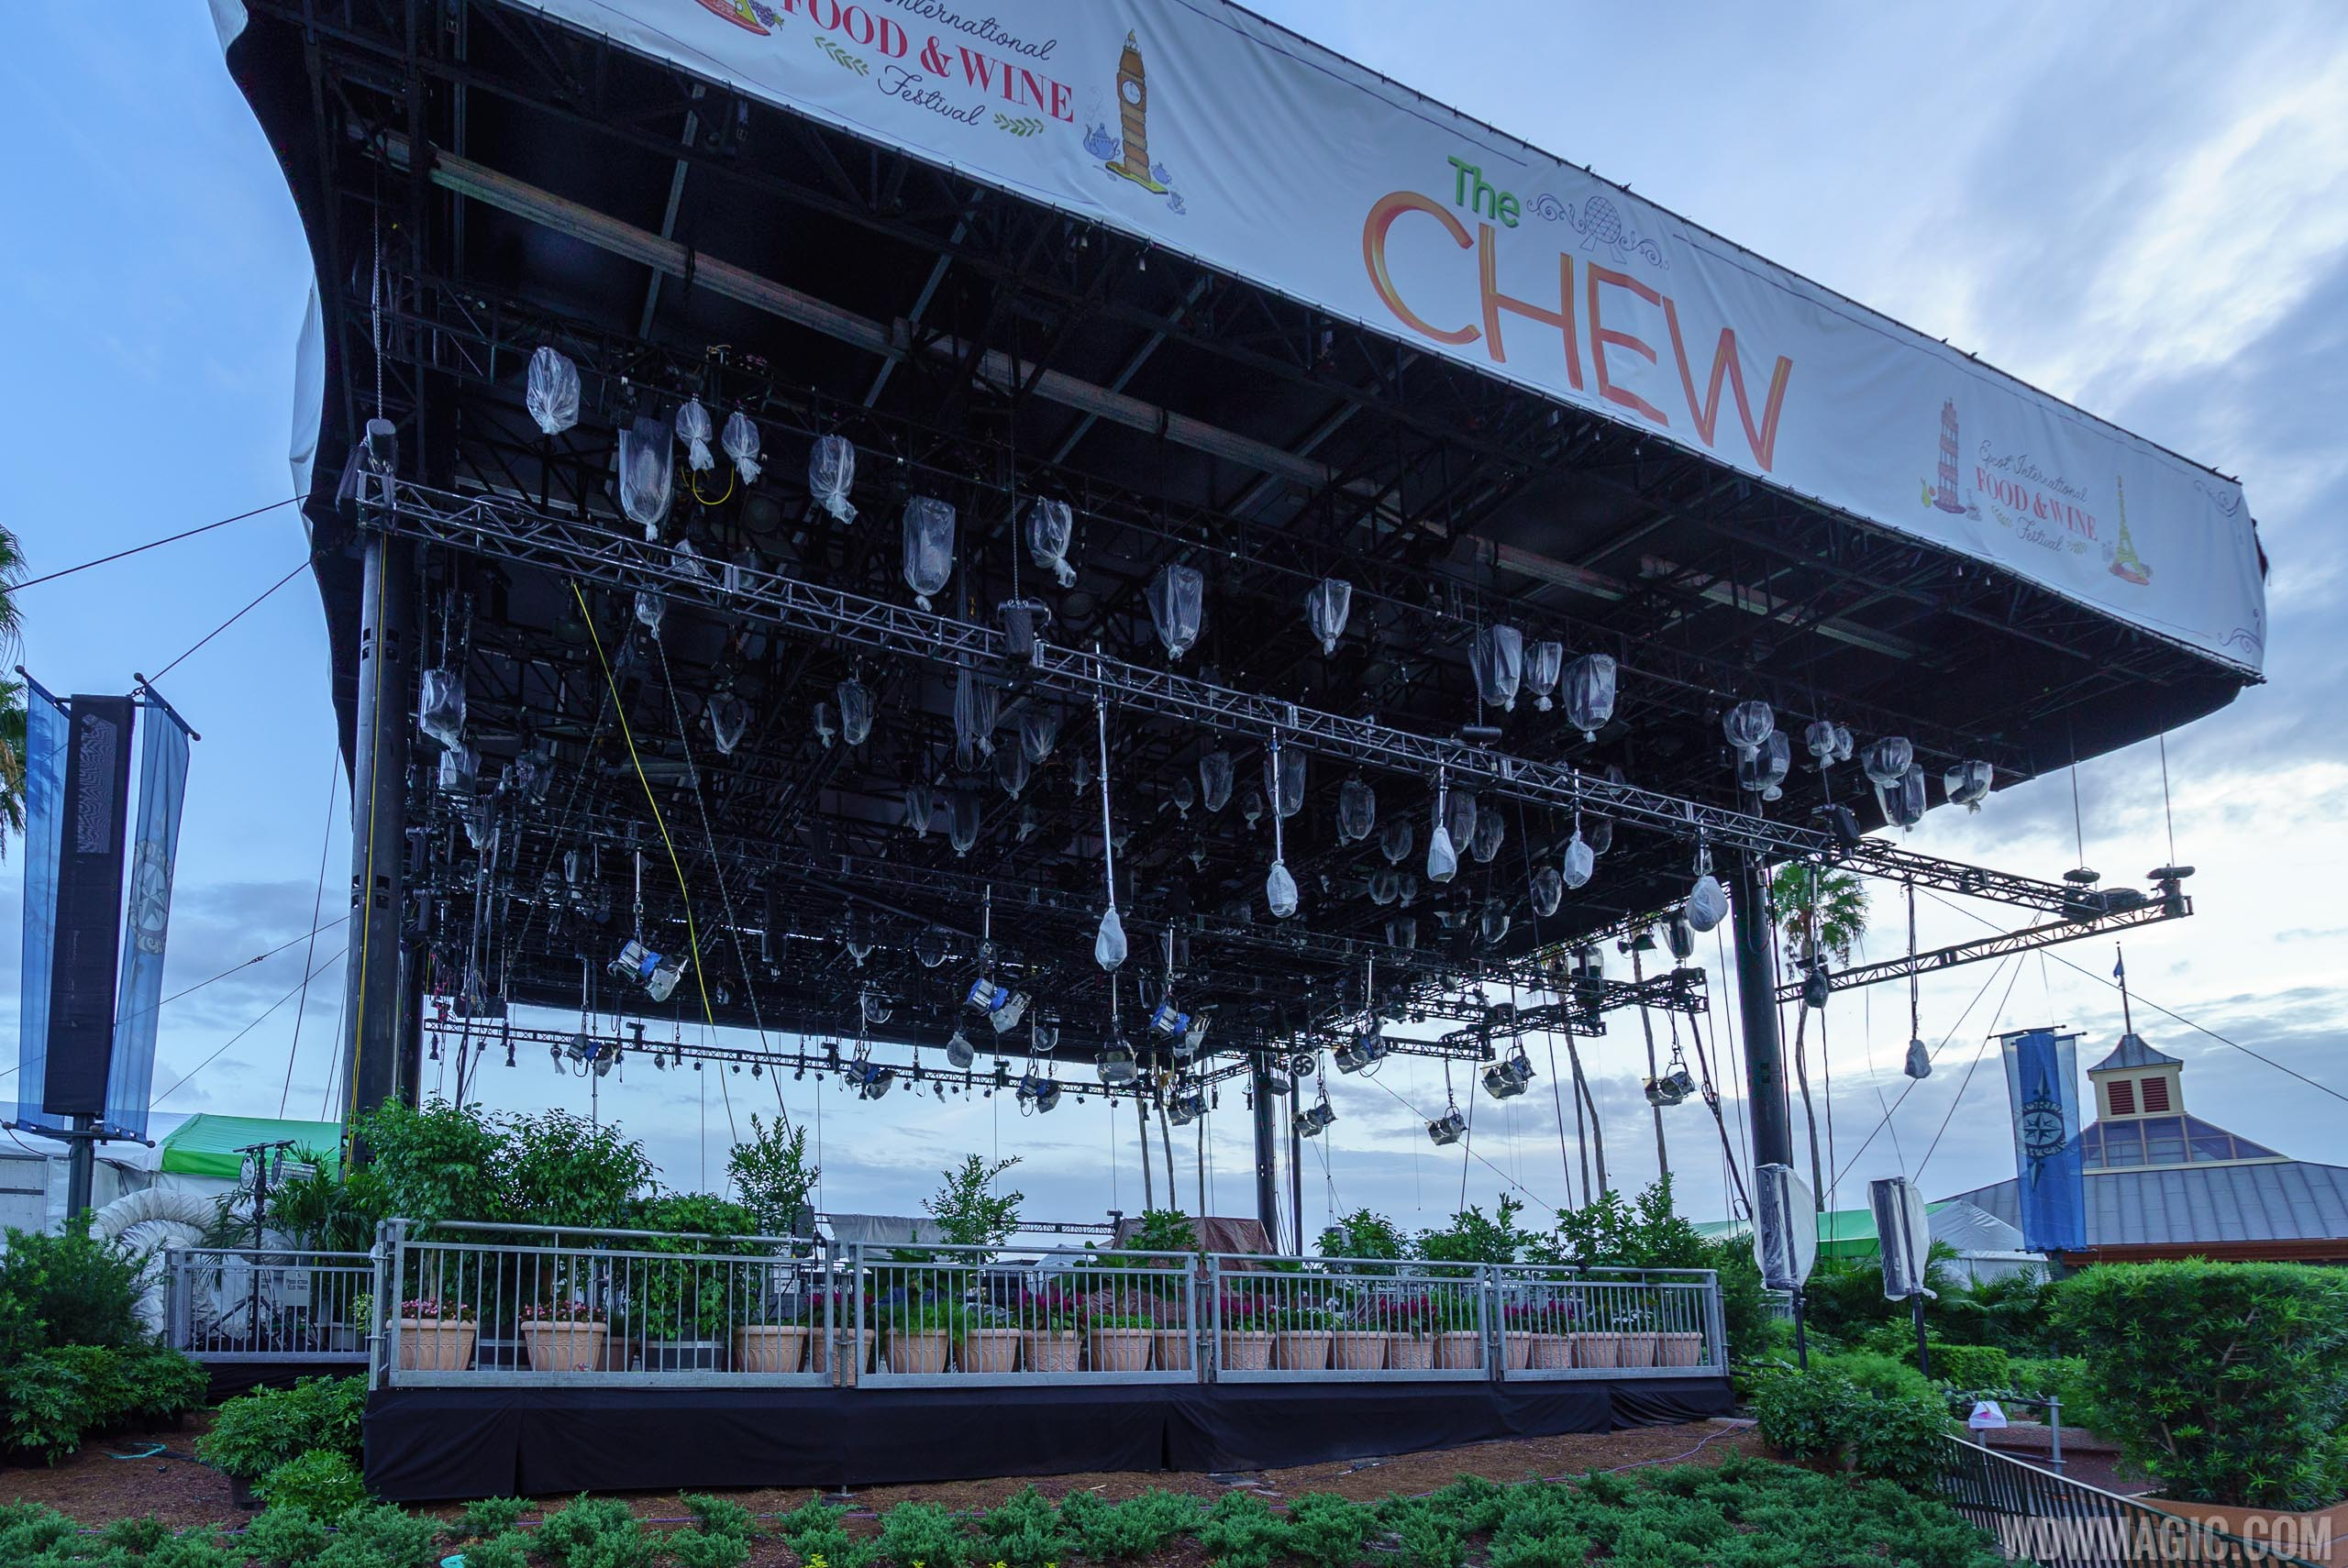 Shows have been recorded at Epcot in 2017, including The CHEW and Wheel of Fortune